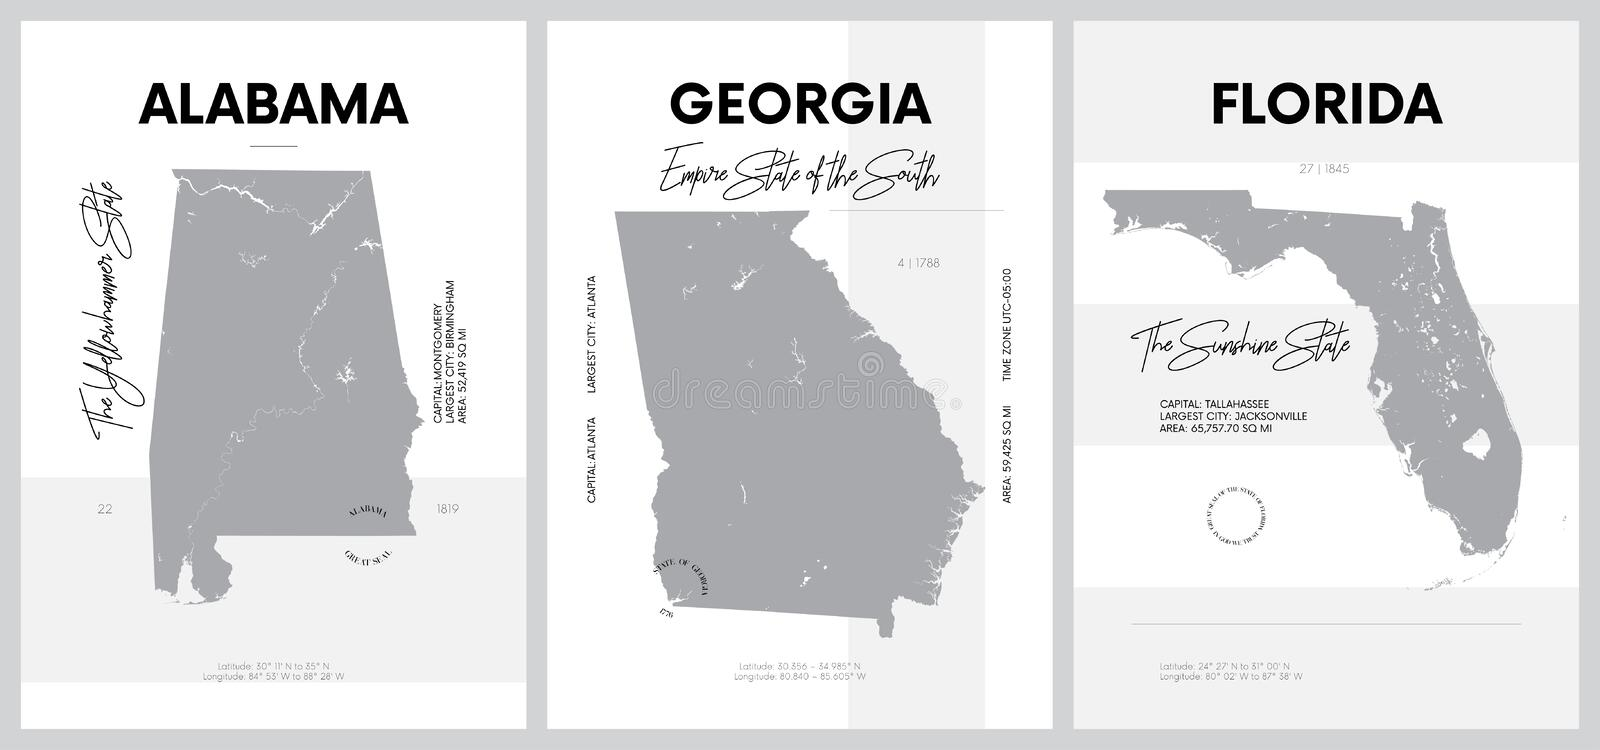 Vector posters with highly detailed silhouettes of maps of the states of America, Division South Atlantic and East South Central. Alabama, Georgia, Florida royalty free illustration